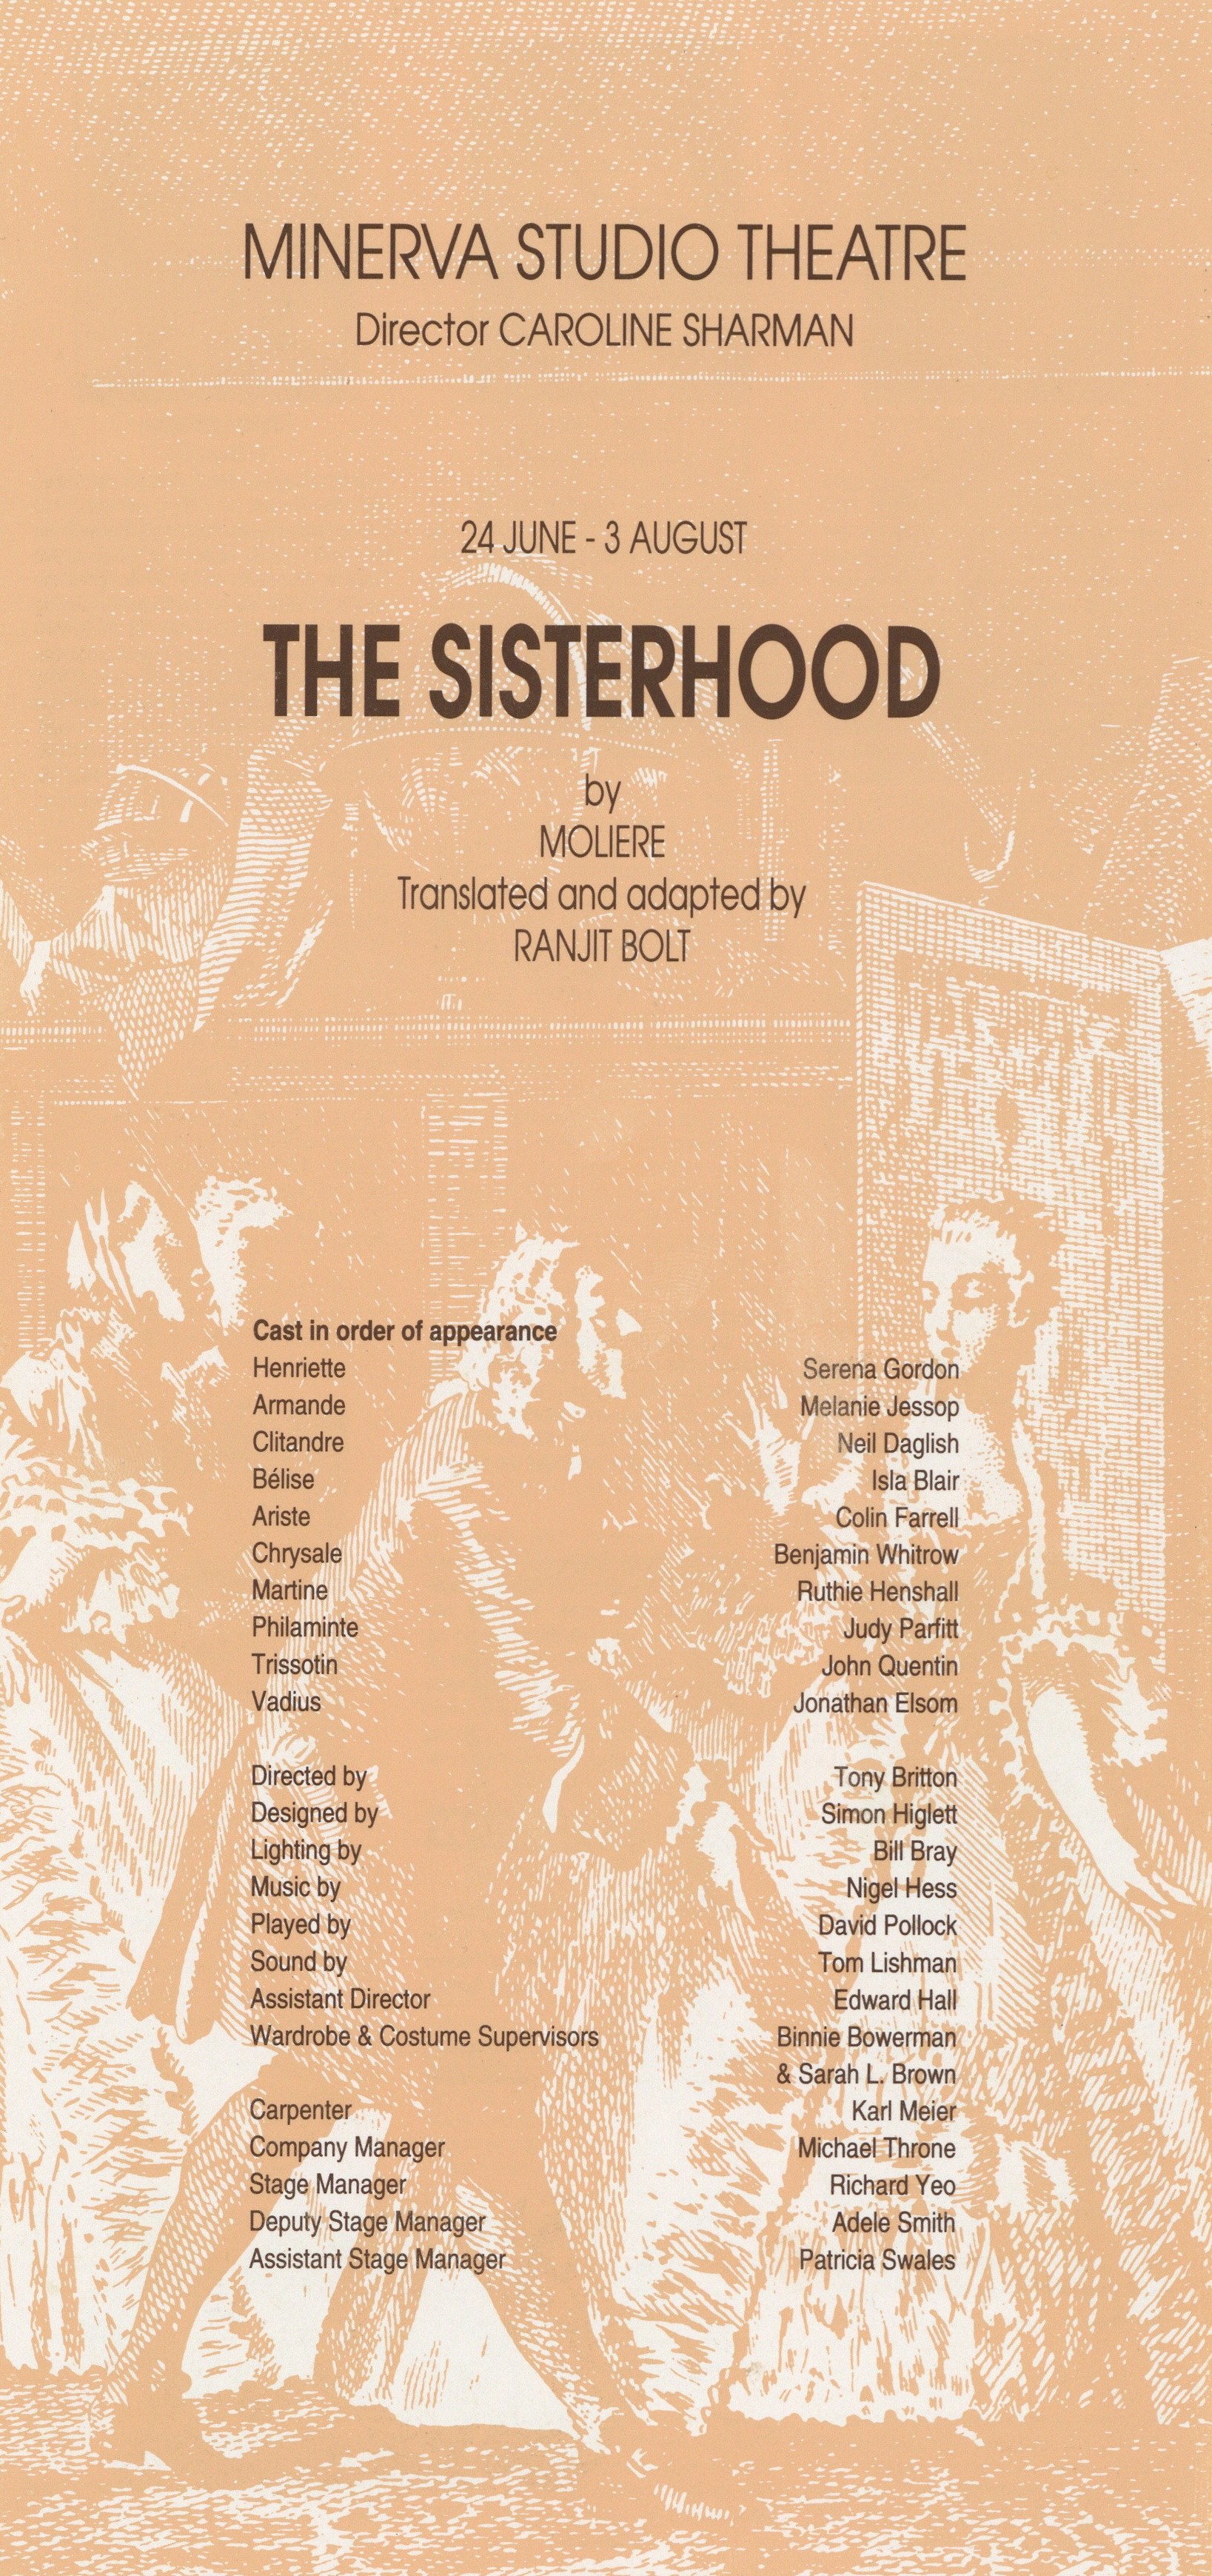 Programme cover - The Sisterhood - 1991 - R Ansley collection - H29.7cm W14cm